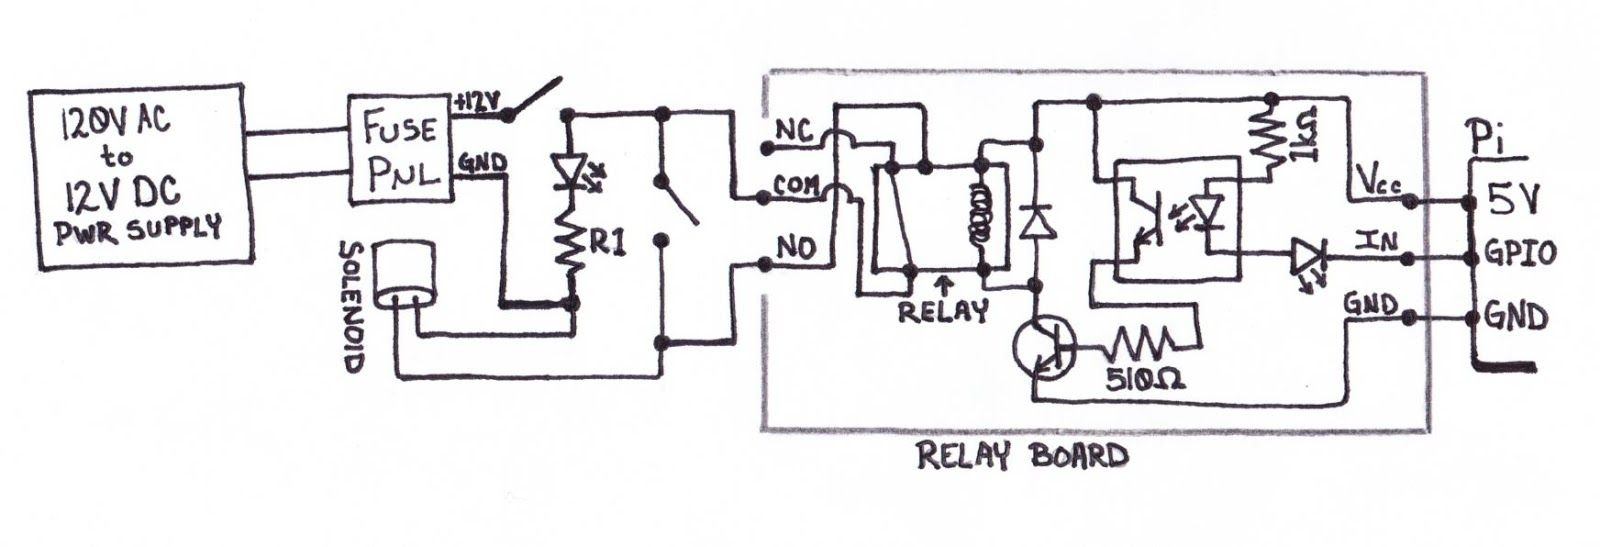 small resolution of circuit diagram for operating a solenoid valve with a raspberry pi to control sprinklers to water the garden raspberry pi solenoid valve sprinklers